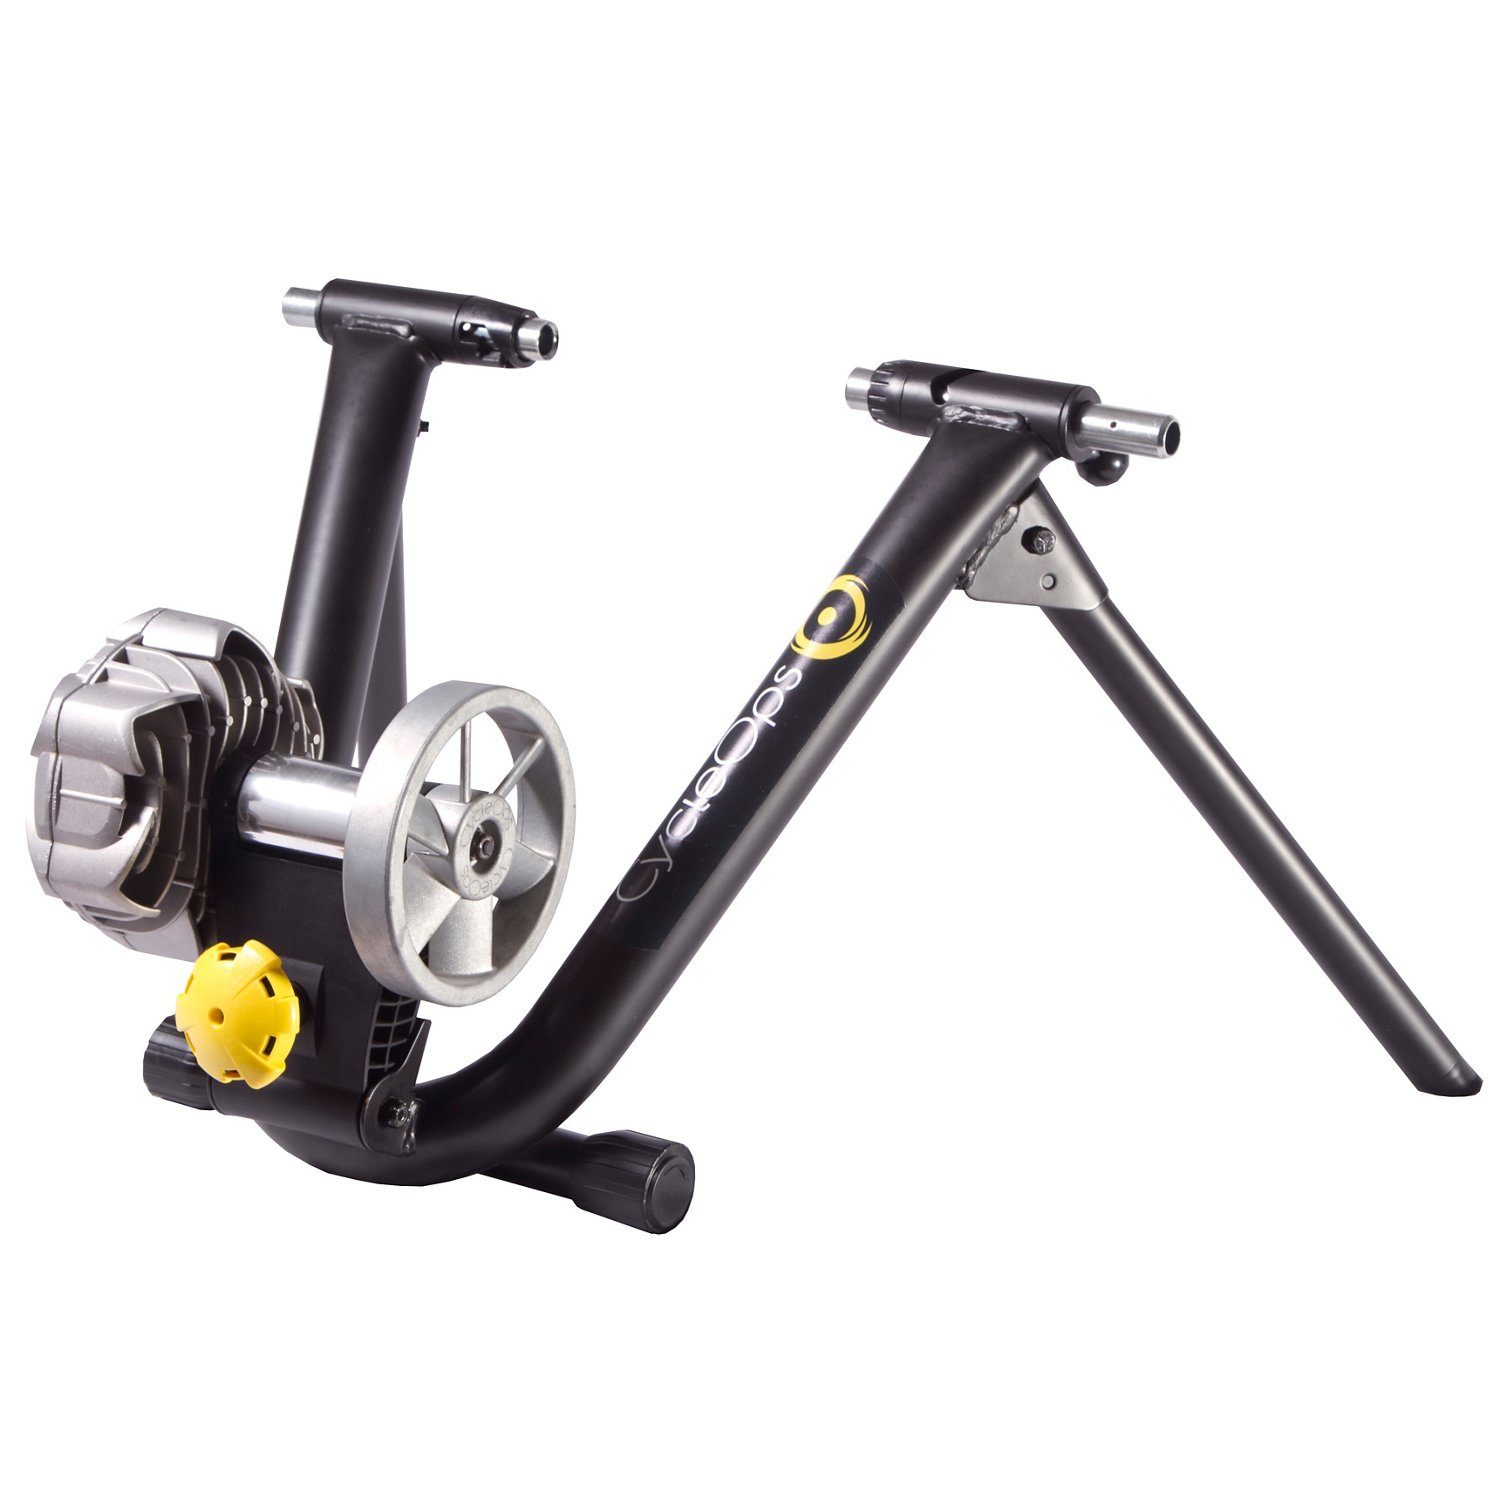 CycleOps Fluid2 Bicycle Trainer